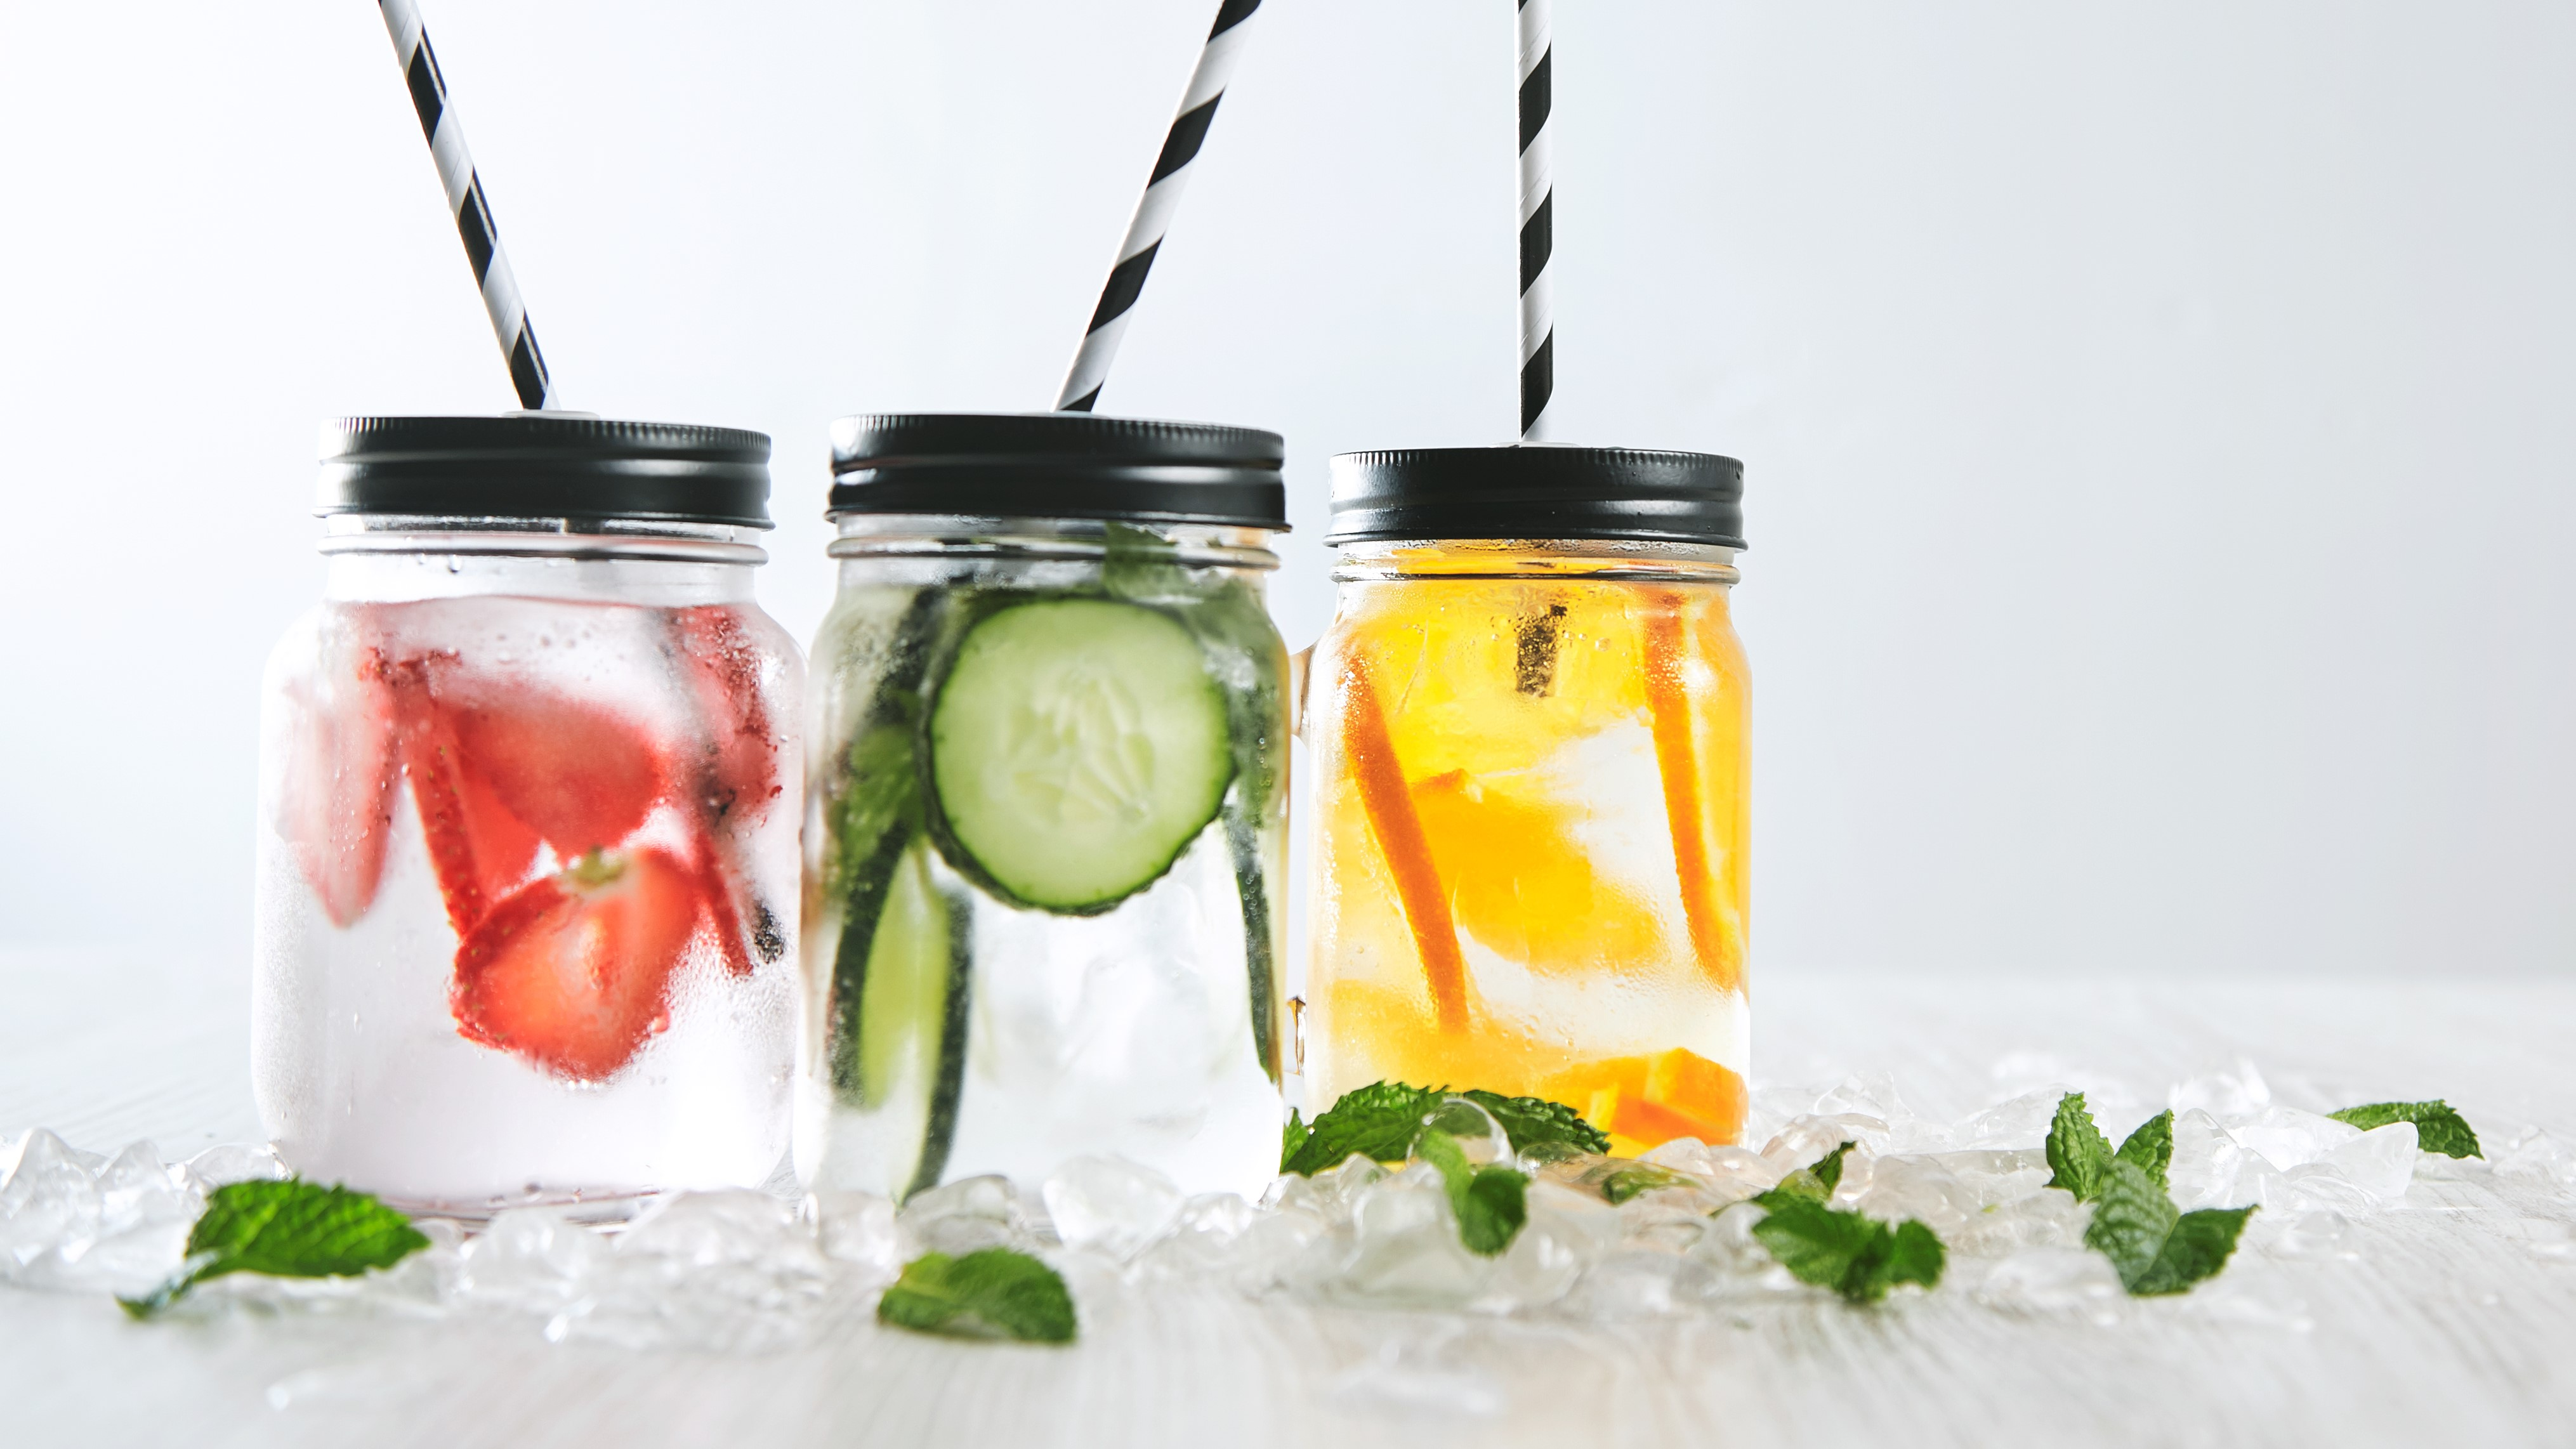 Three cold refreshment beverages from strawberry,cucumber,lime,mint,ice and sparkling water in rustic jars with drinking straws inside,isolated,focus on orange lemonade